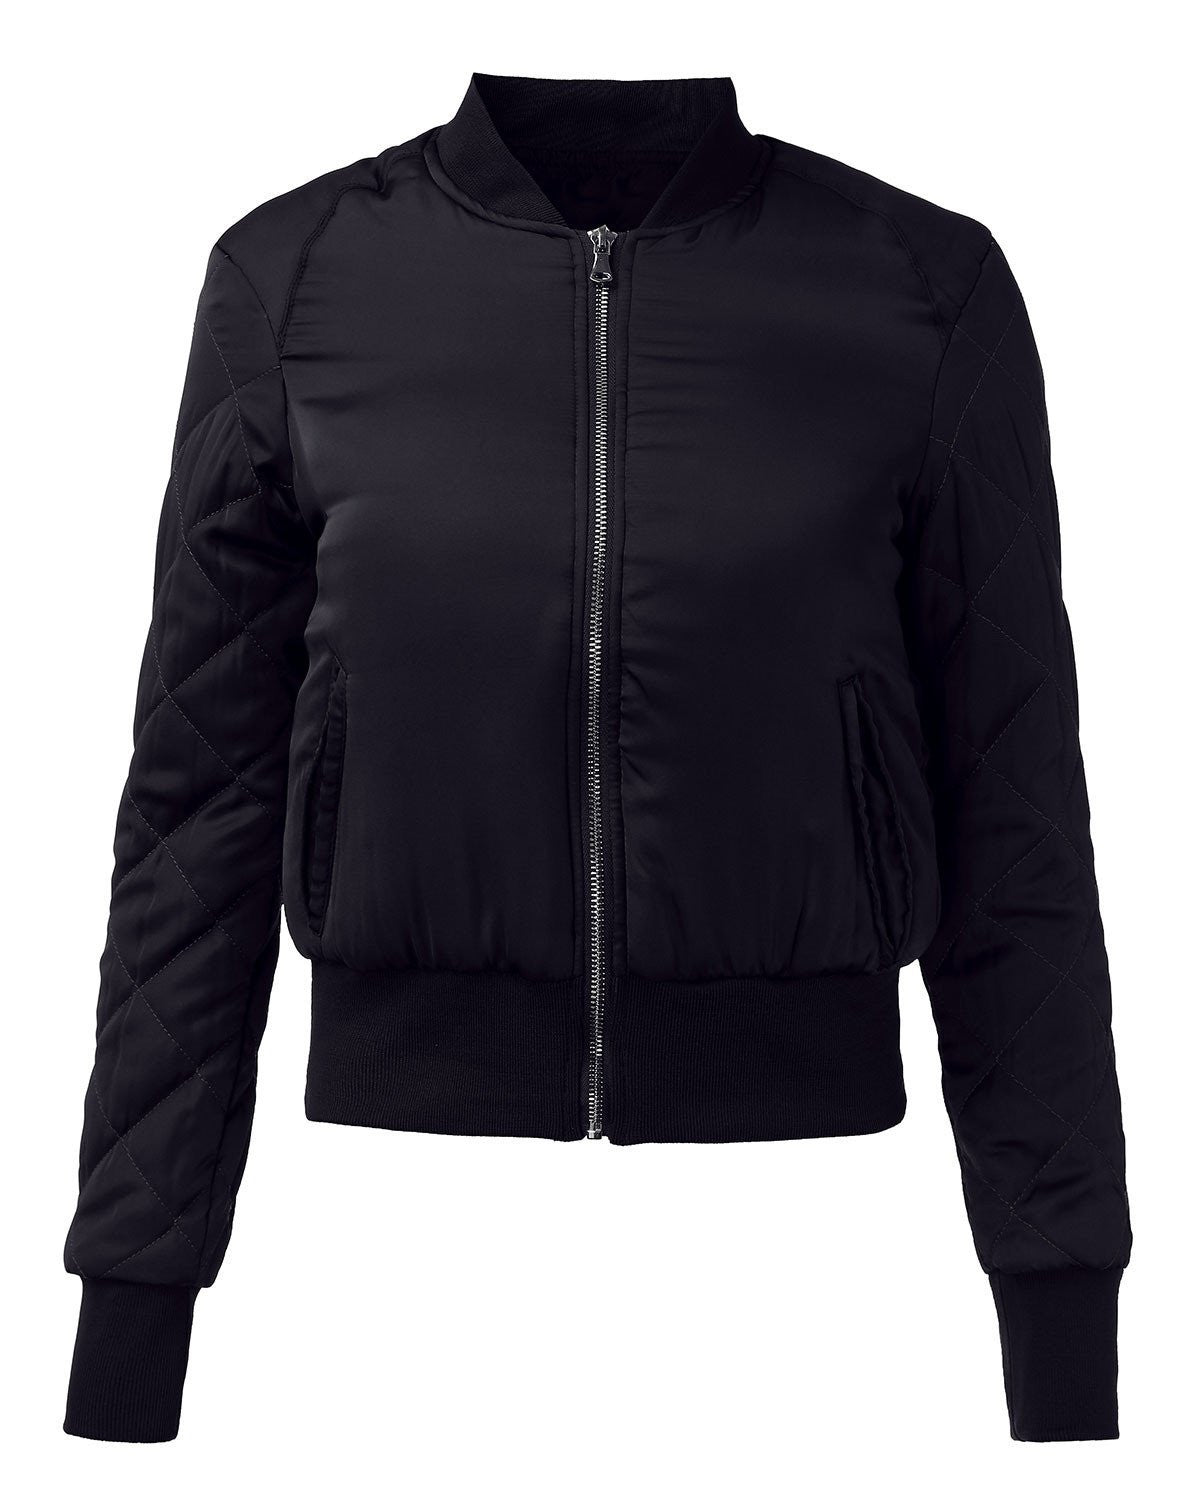 Warm Womens Quilted Jackets Short Thick Fleece Padded Bomber Jacket Coat Pilots Outerwear Tops Plus SizeNavySa